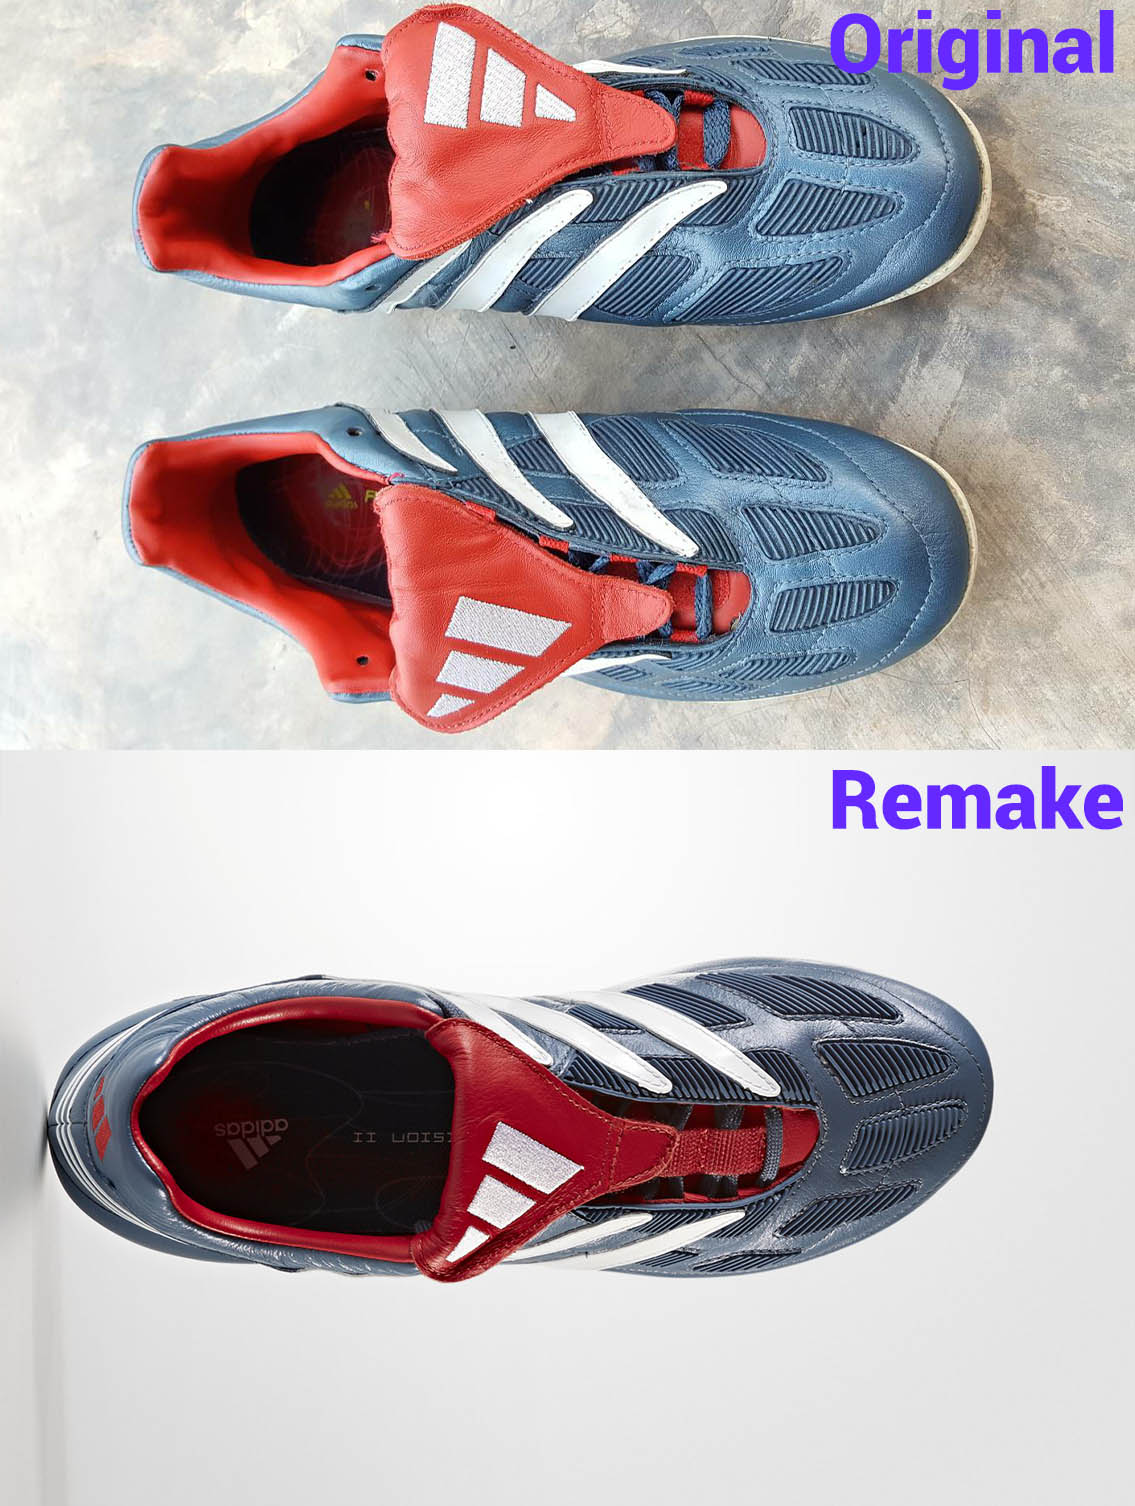 62b9307f58ad ... platinum 2000 uk 10 5 b79ad baa1b good most importantly the sole plate  and the studs of the adidas predator precision 2017 remake ...